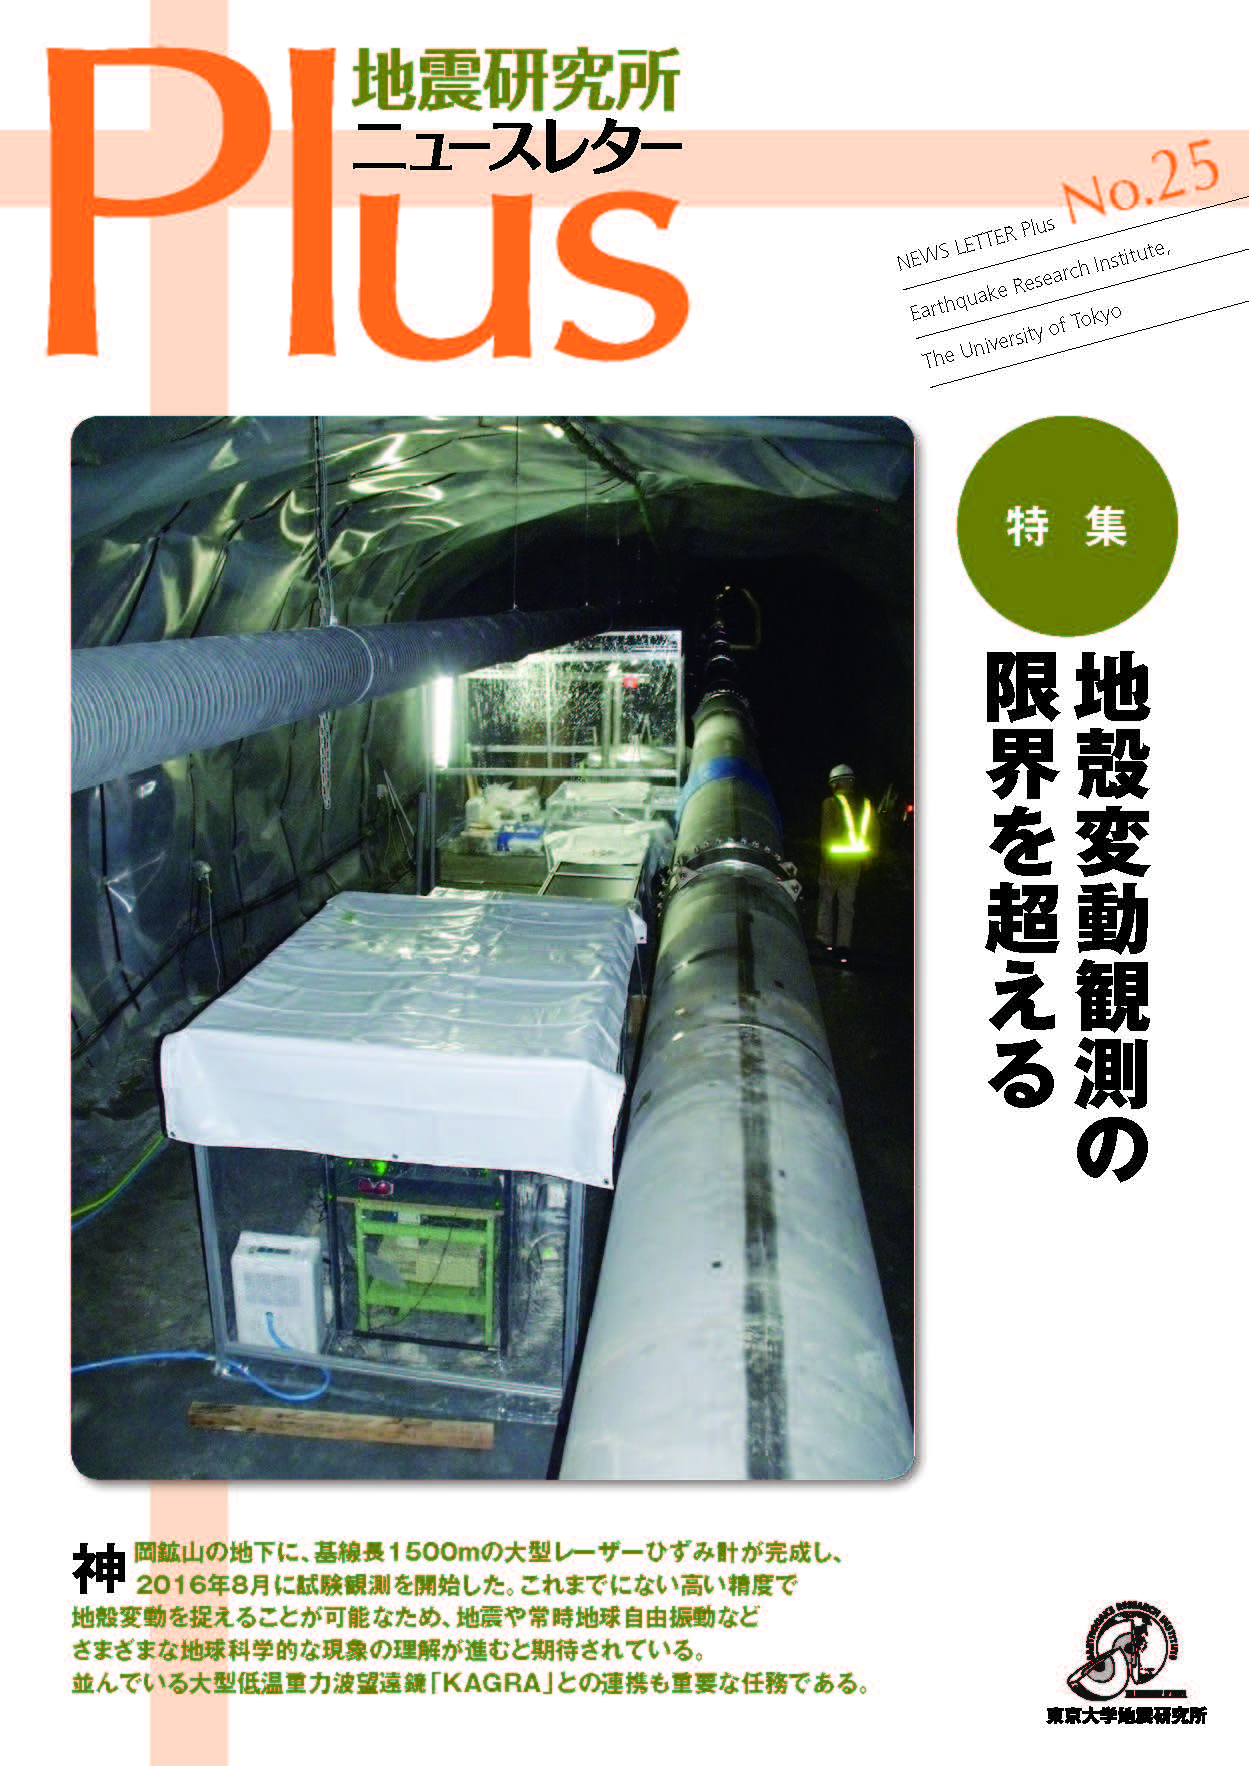 NewsLetterPlus No.25刊行